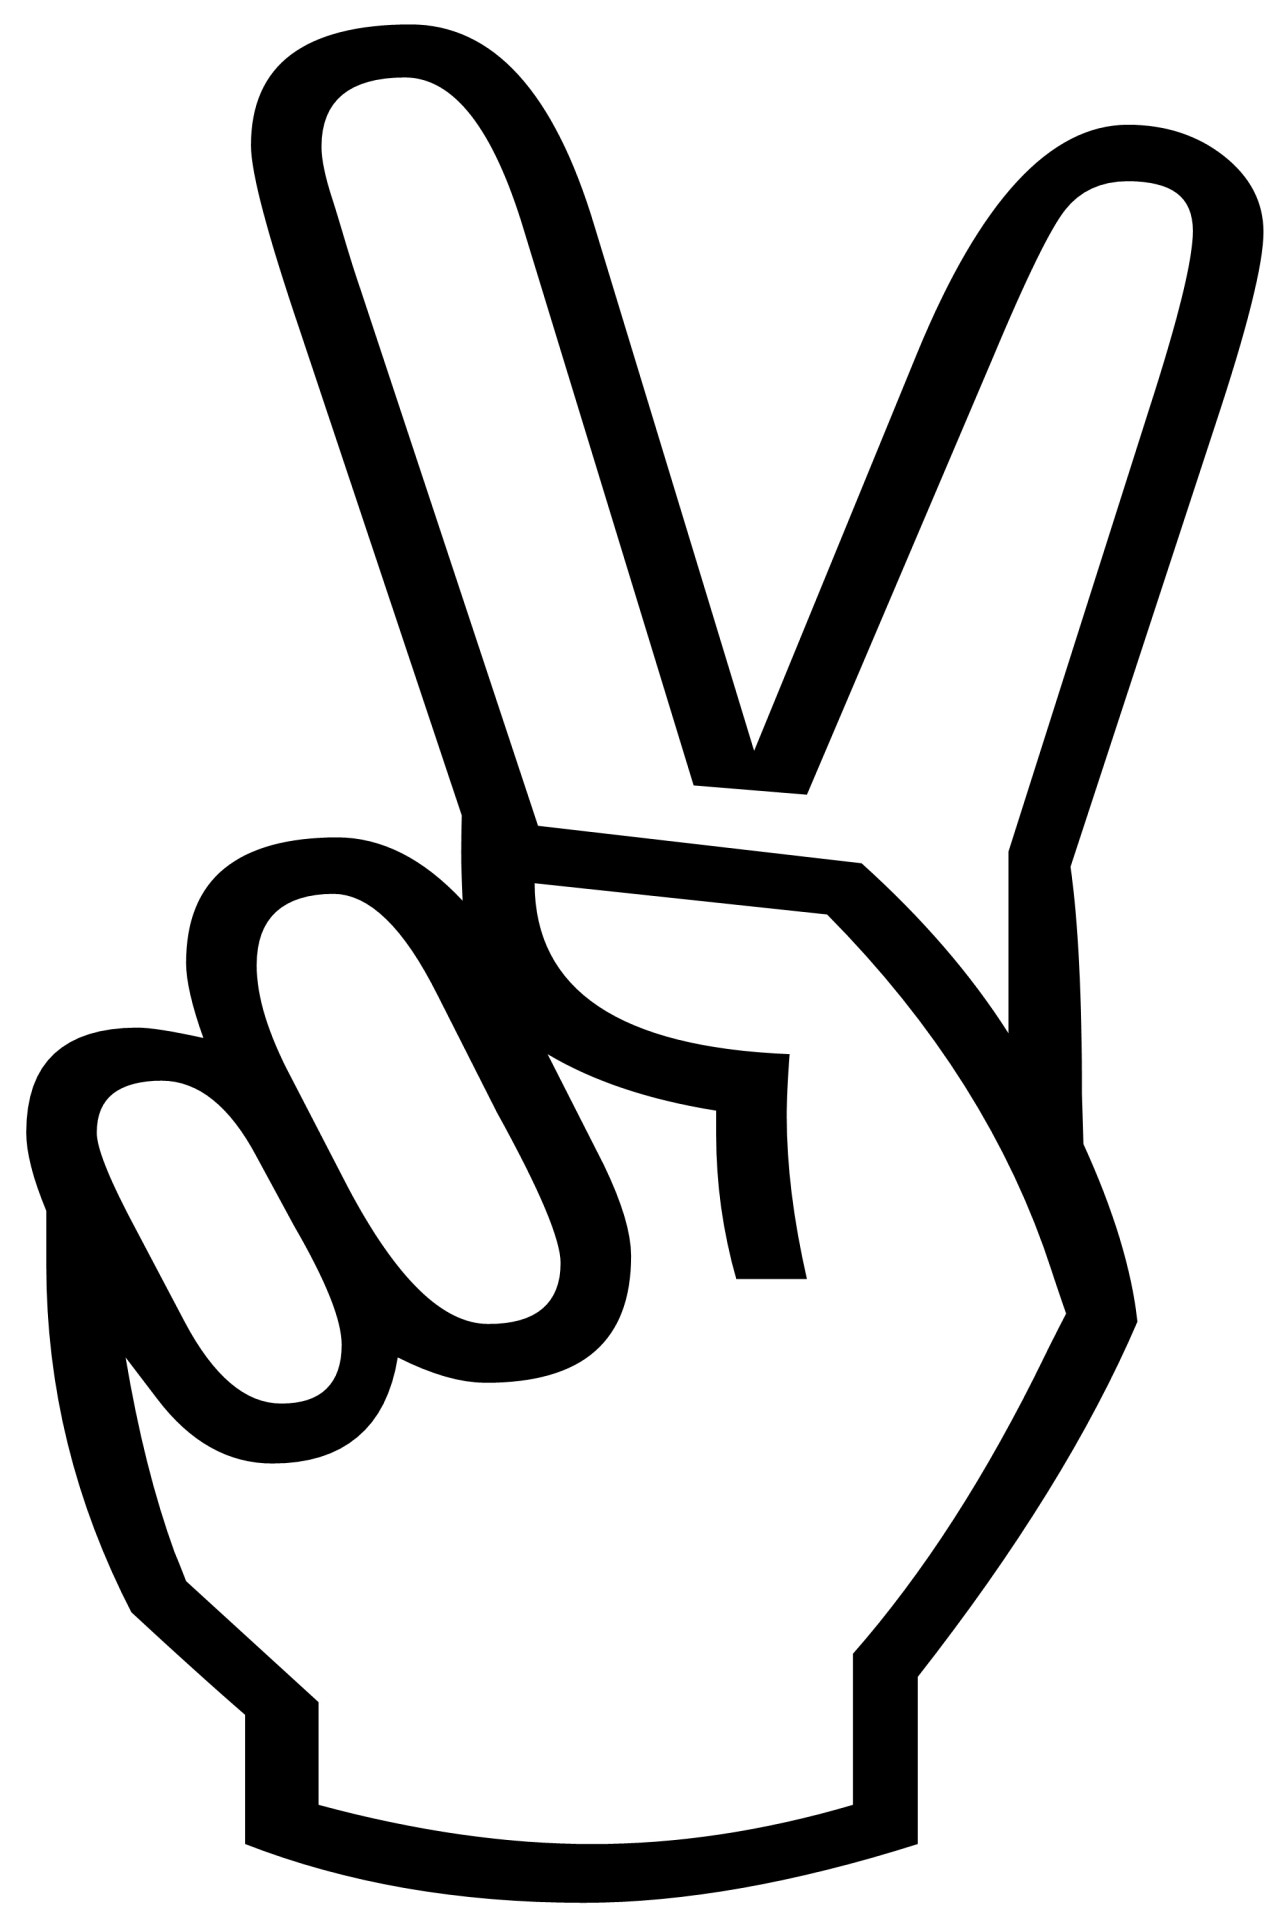 1280x1920 Victory Sign Silhouette Free Stock Photo